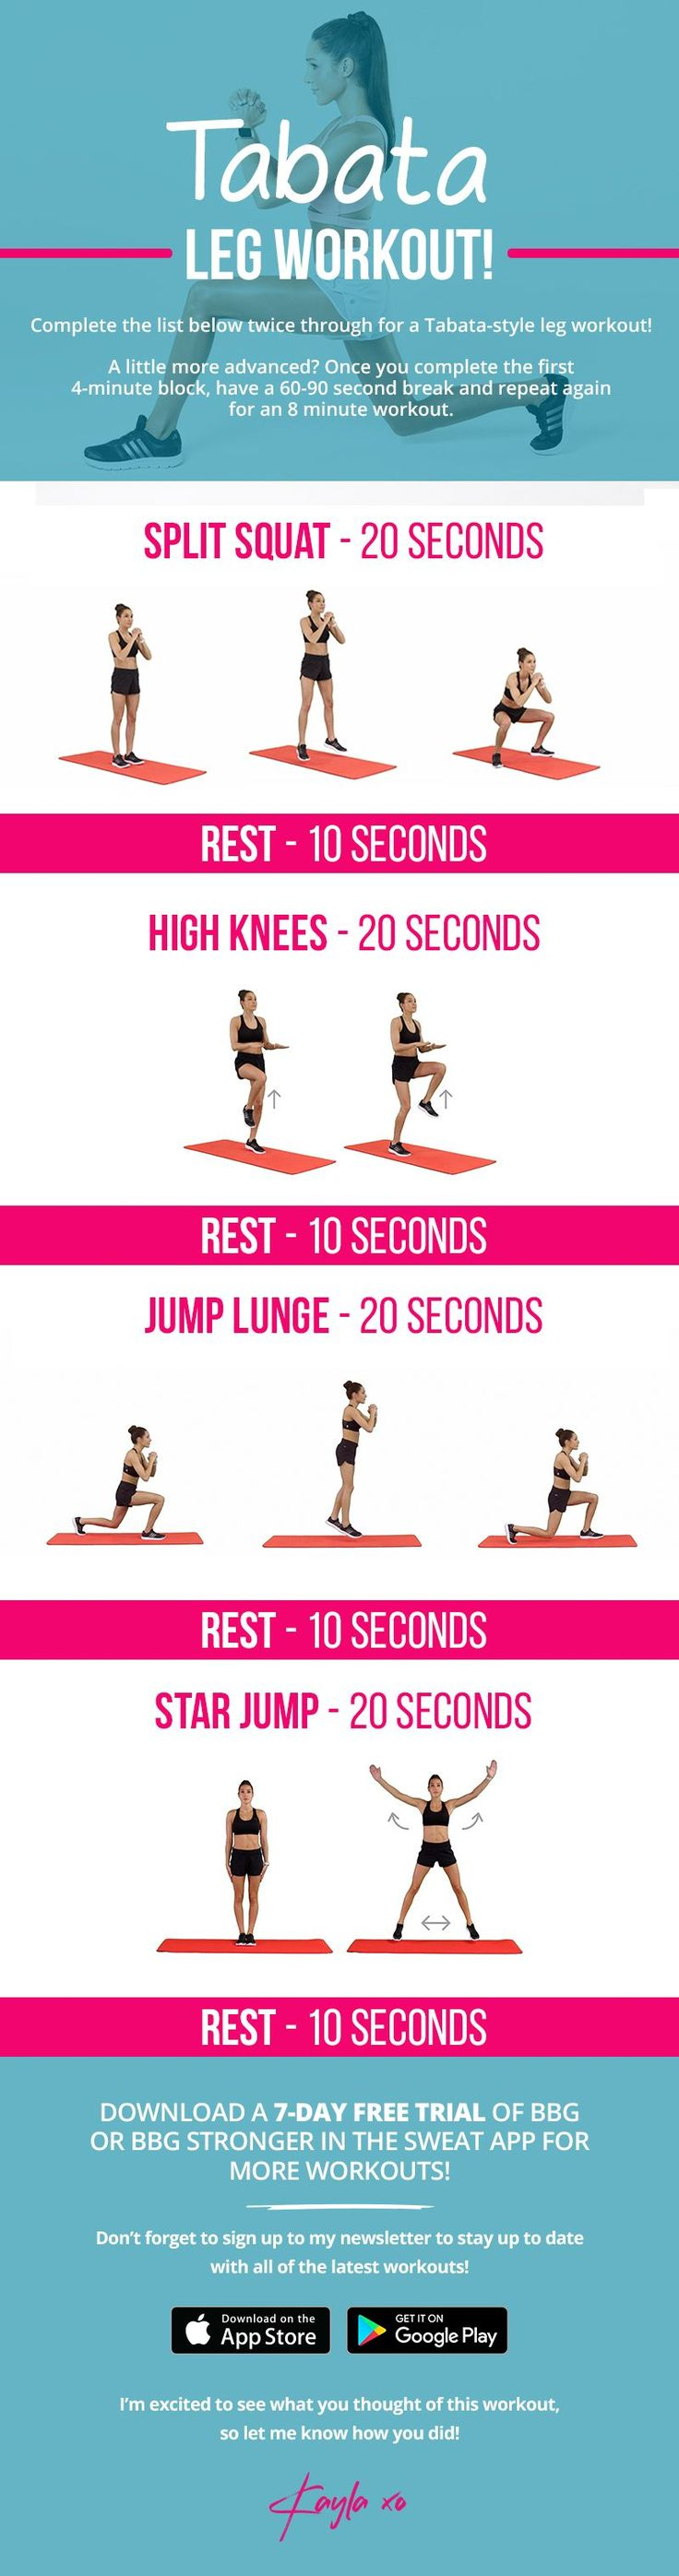 Tabata leg workout by Kayla Itsines